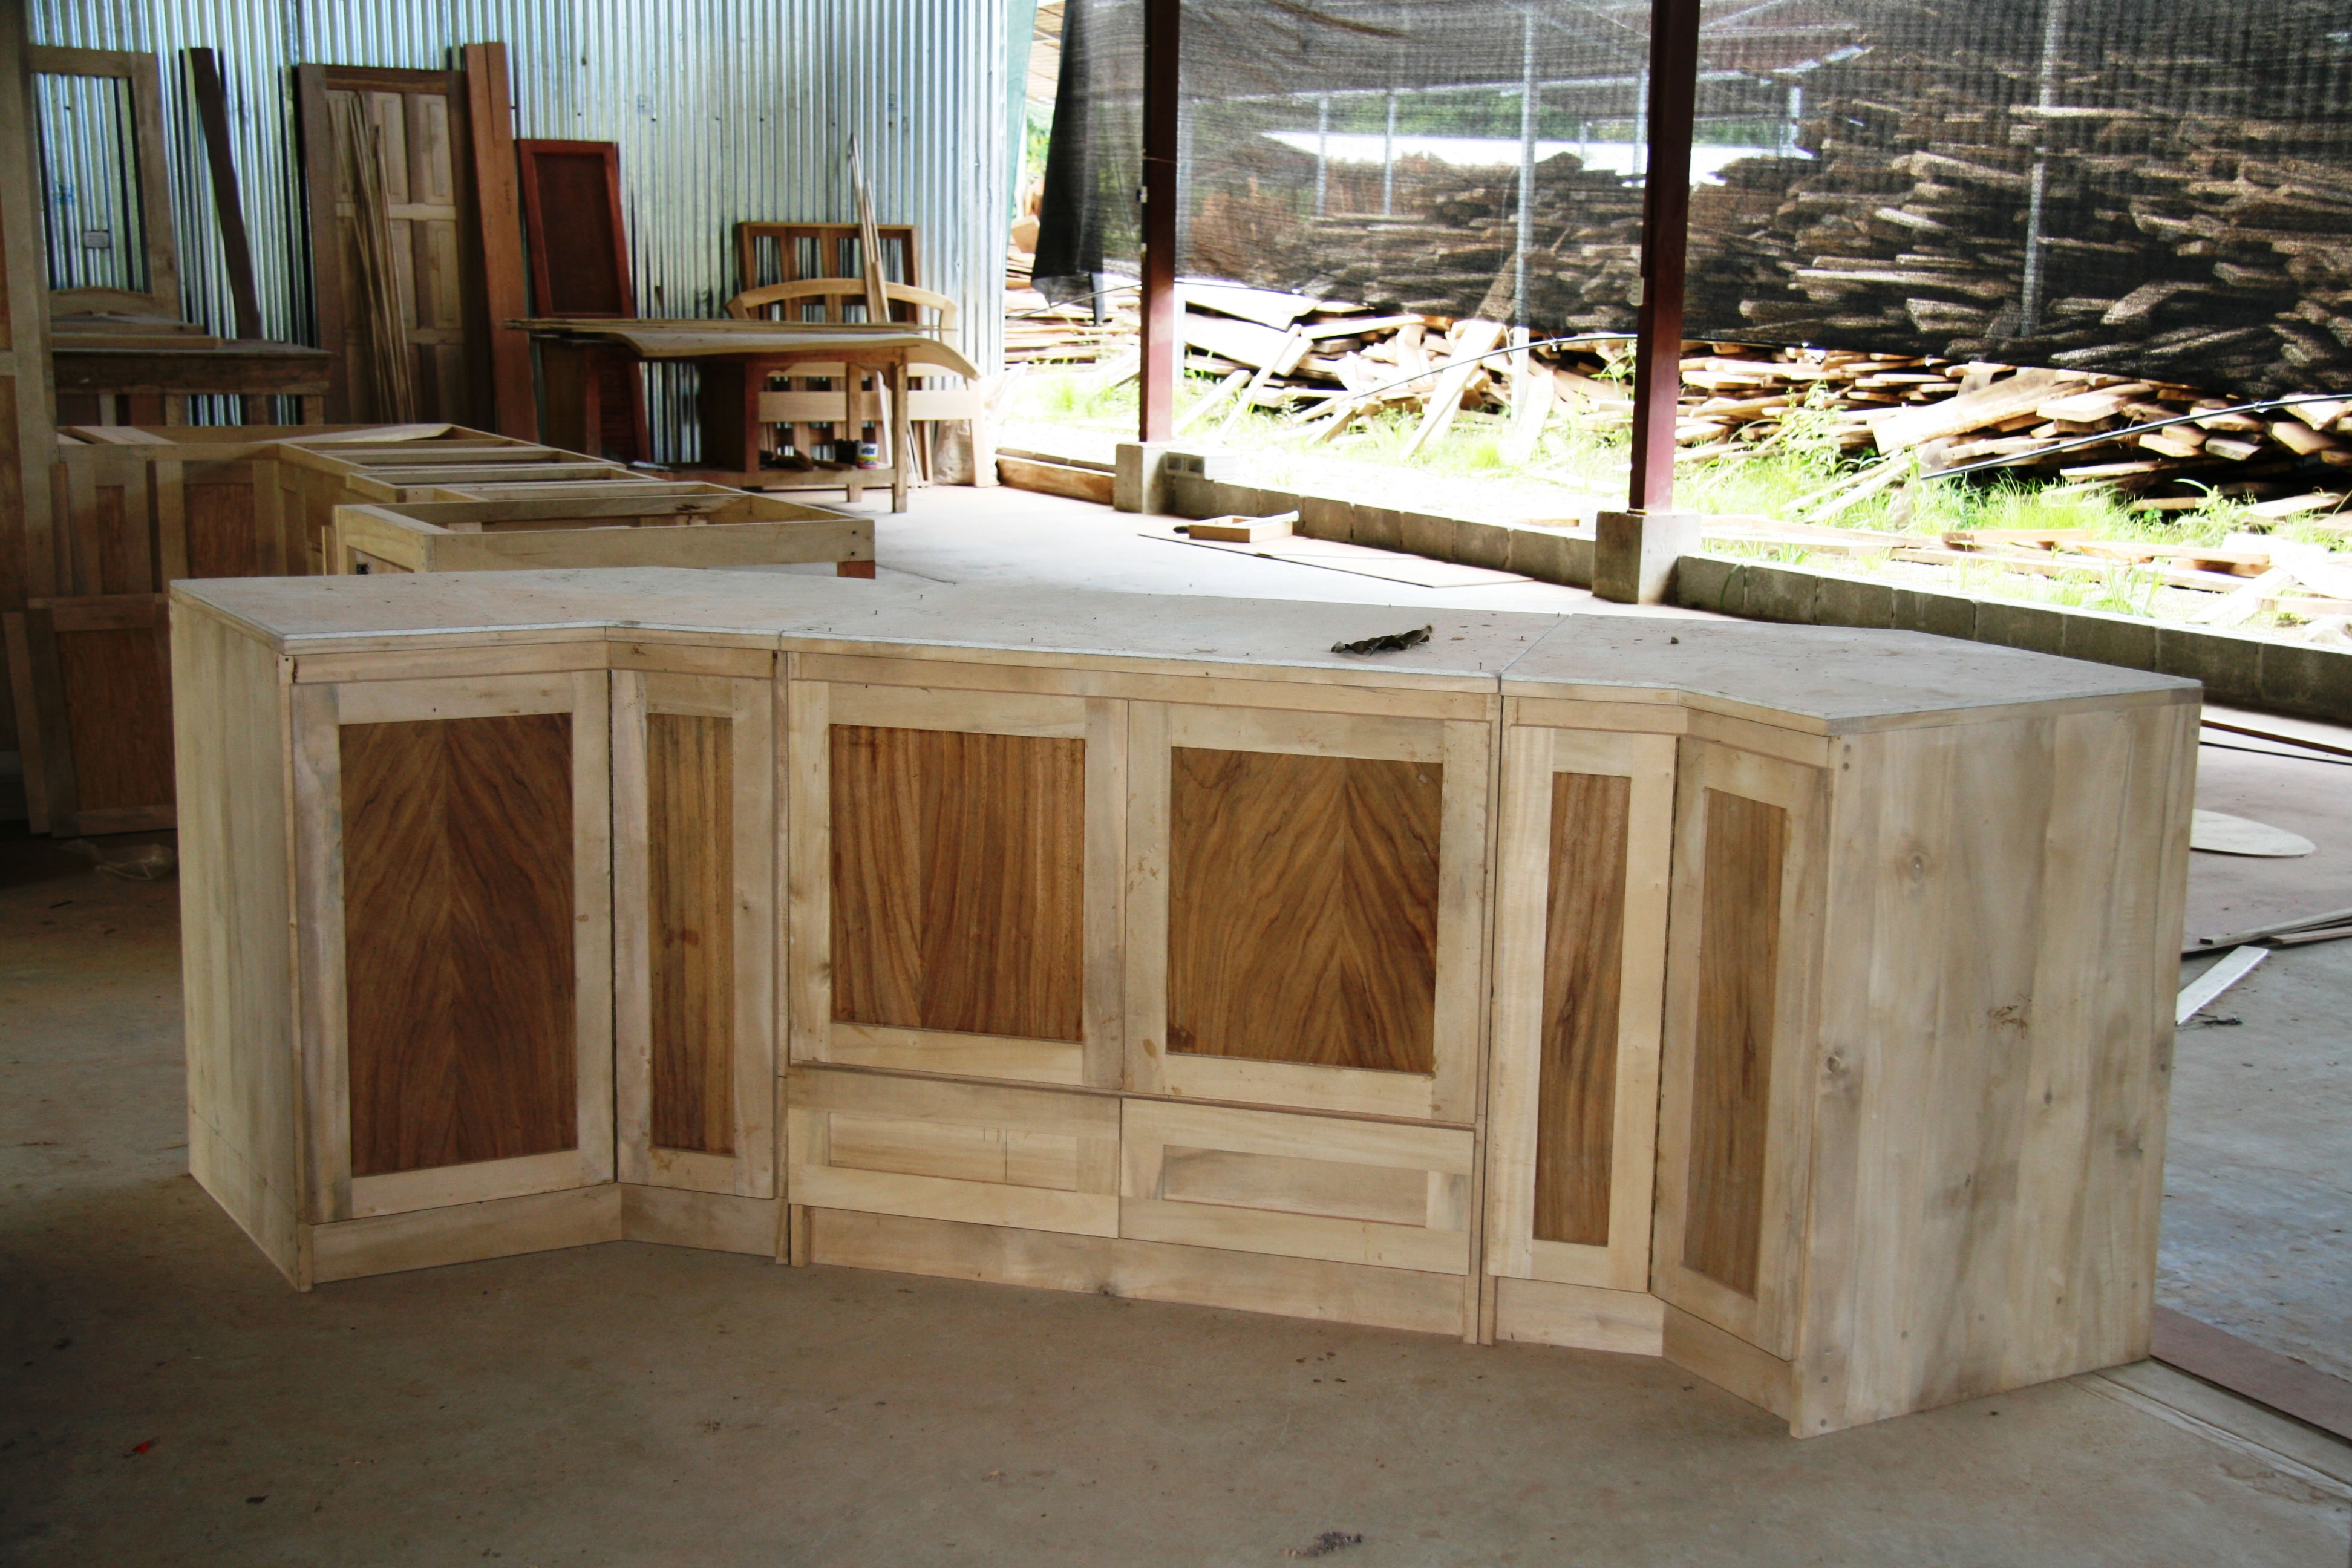 Magnificent Woodworking Wood Shop 3888 x 2592 · 1275 kB · jpeg